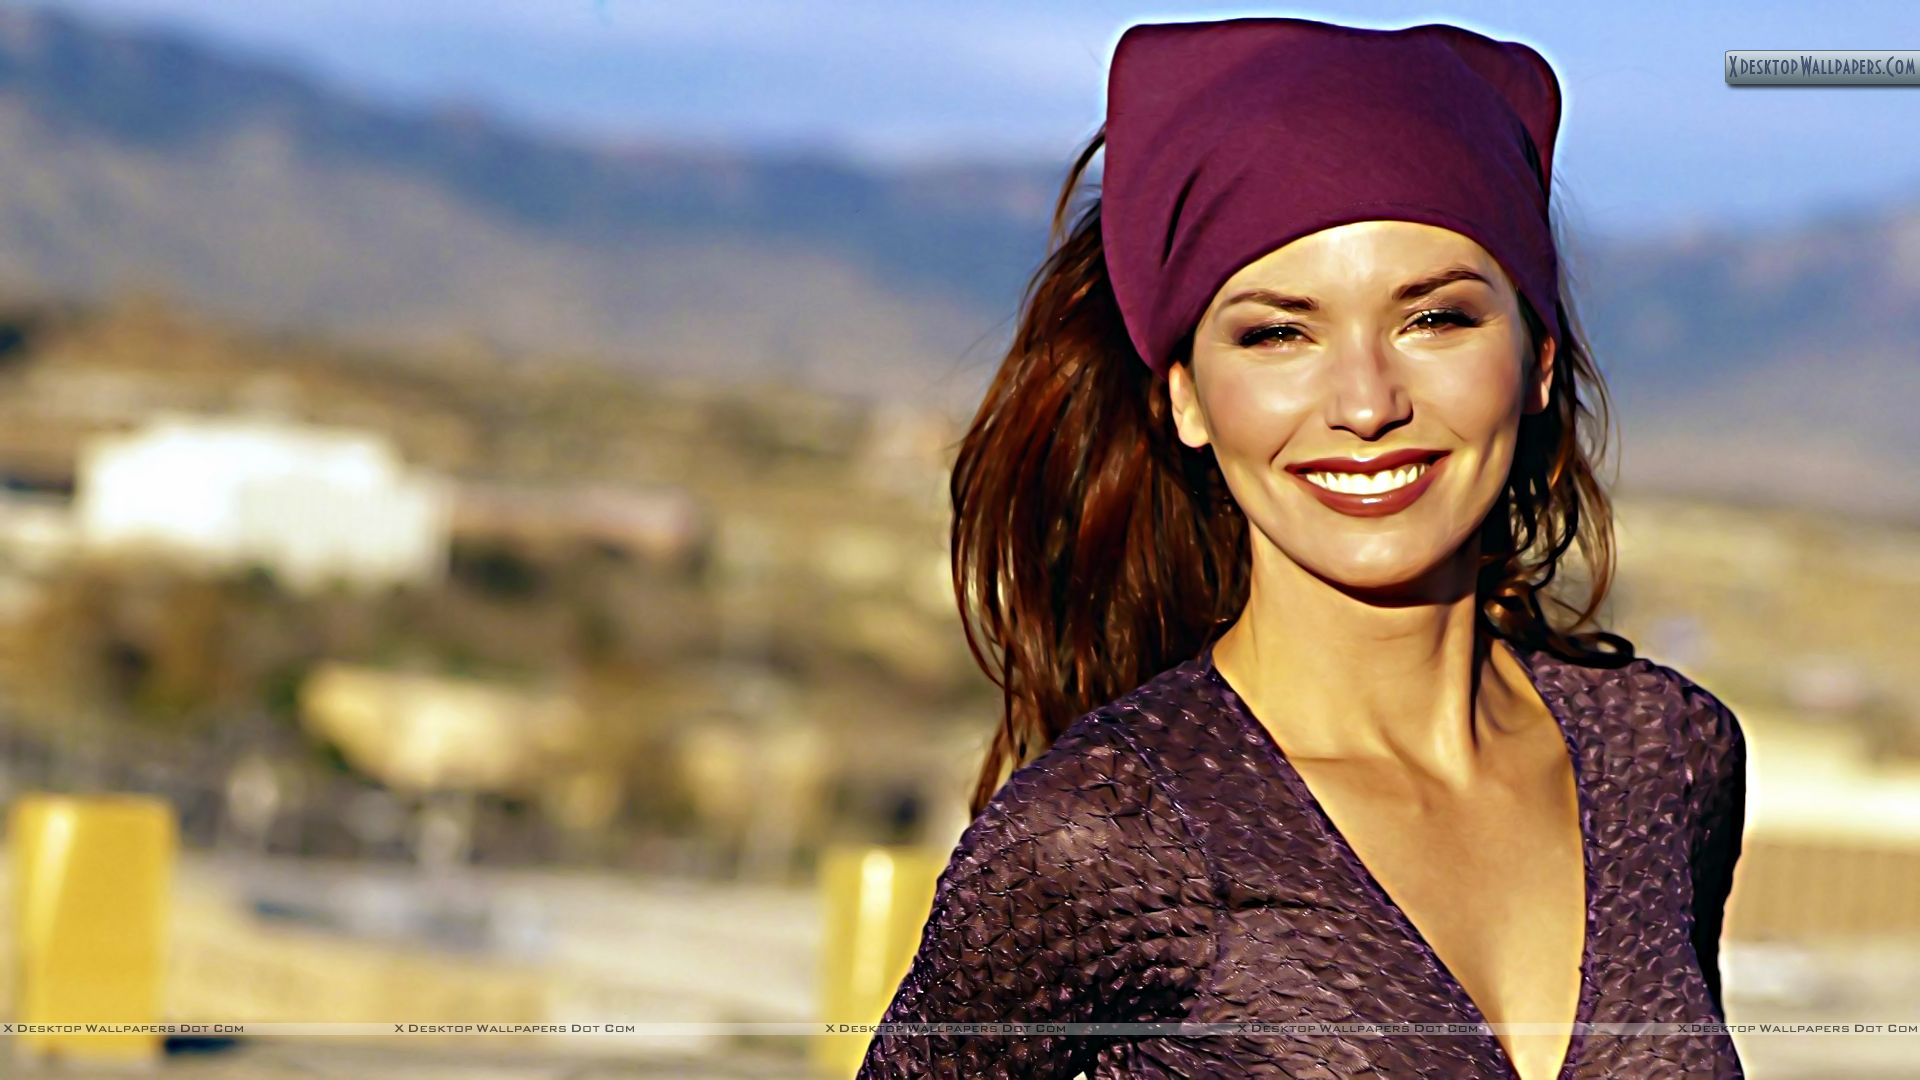 Shania Twain Wallpapers Photos Images in HD 1920x1080